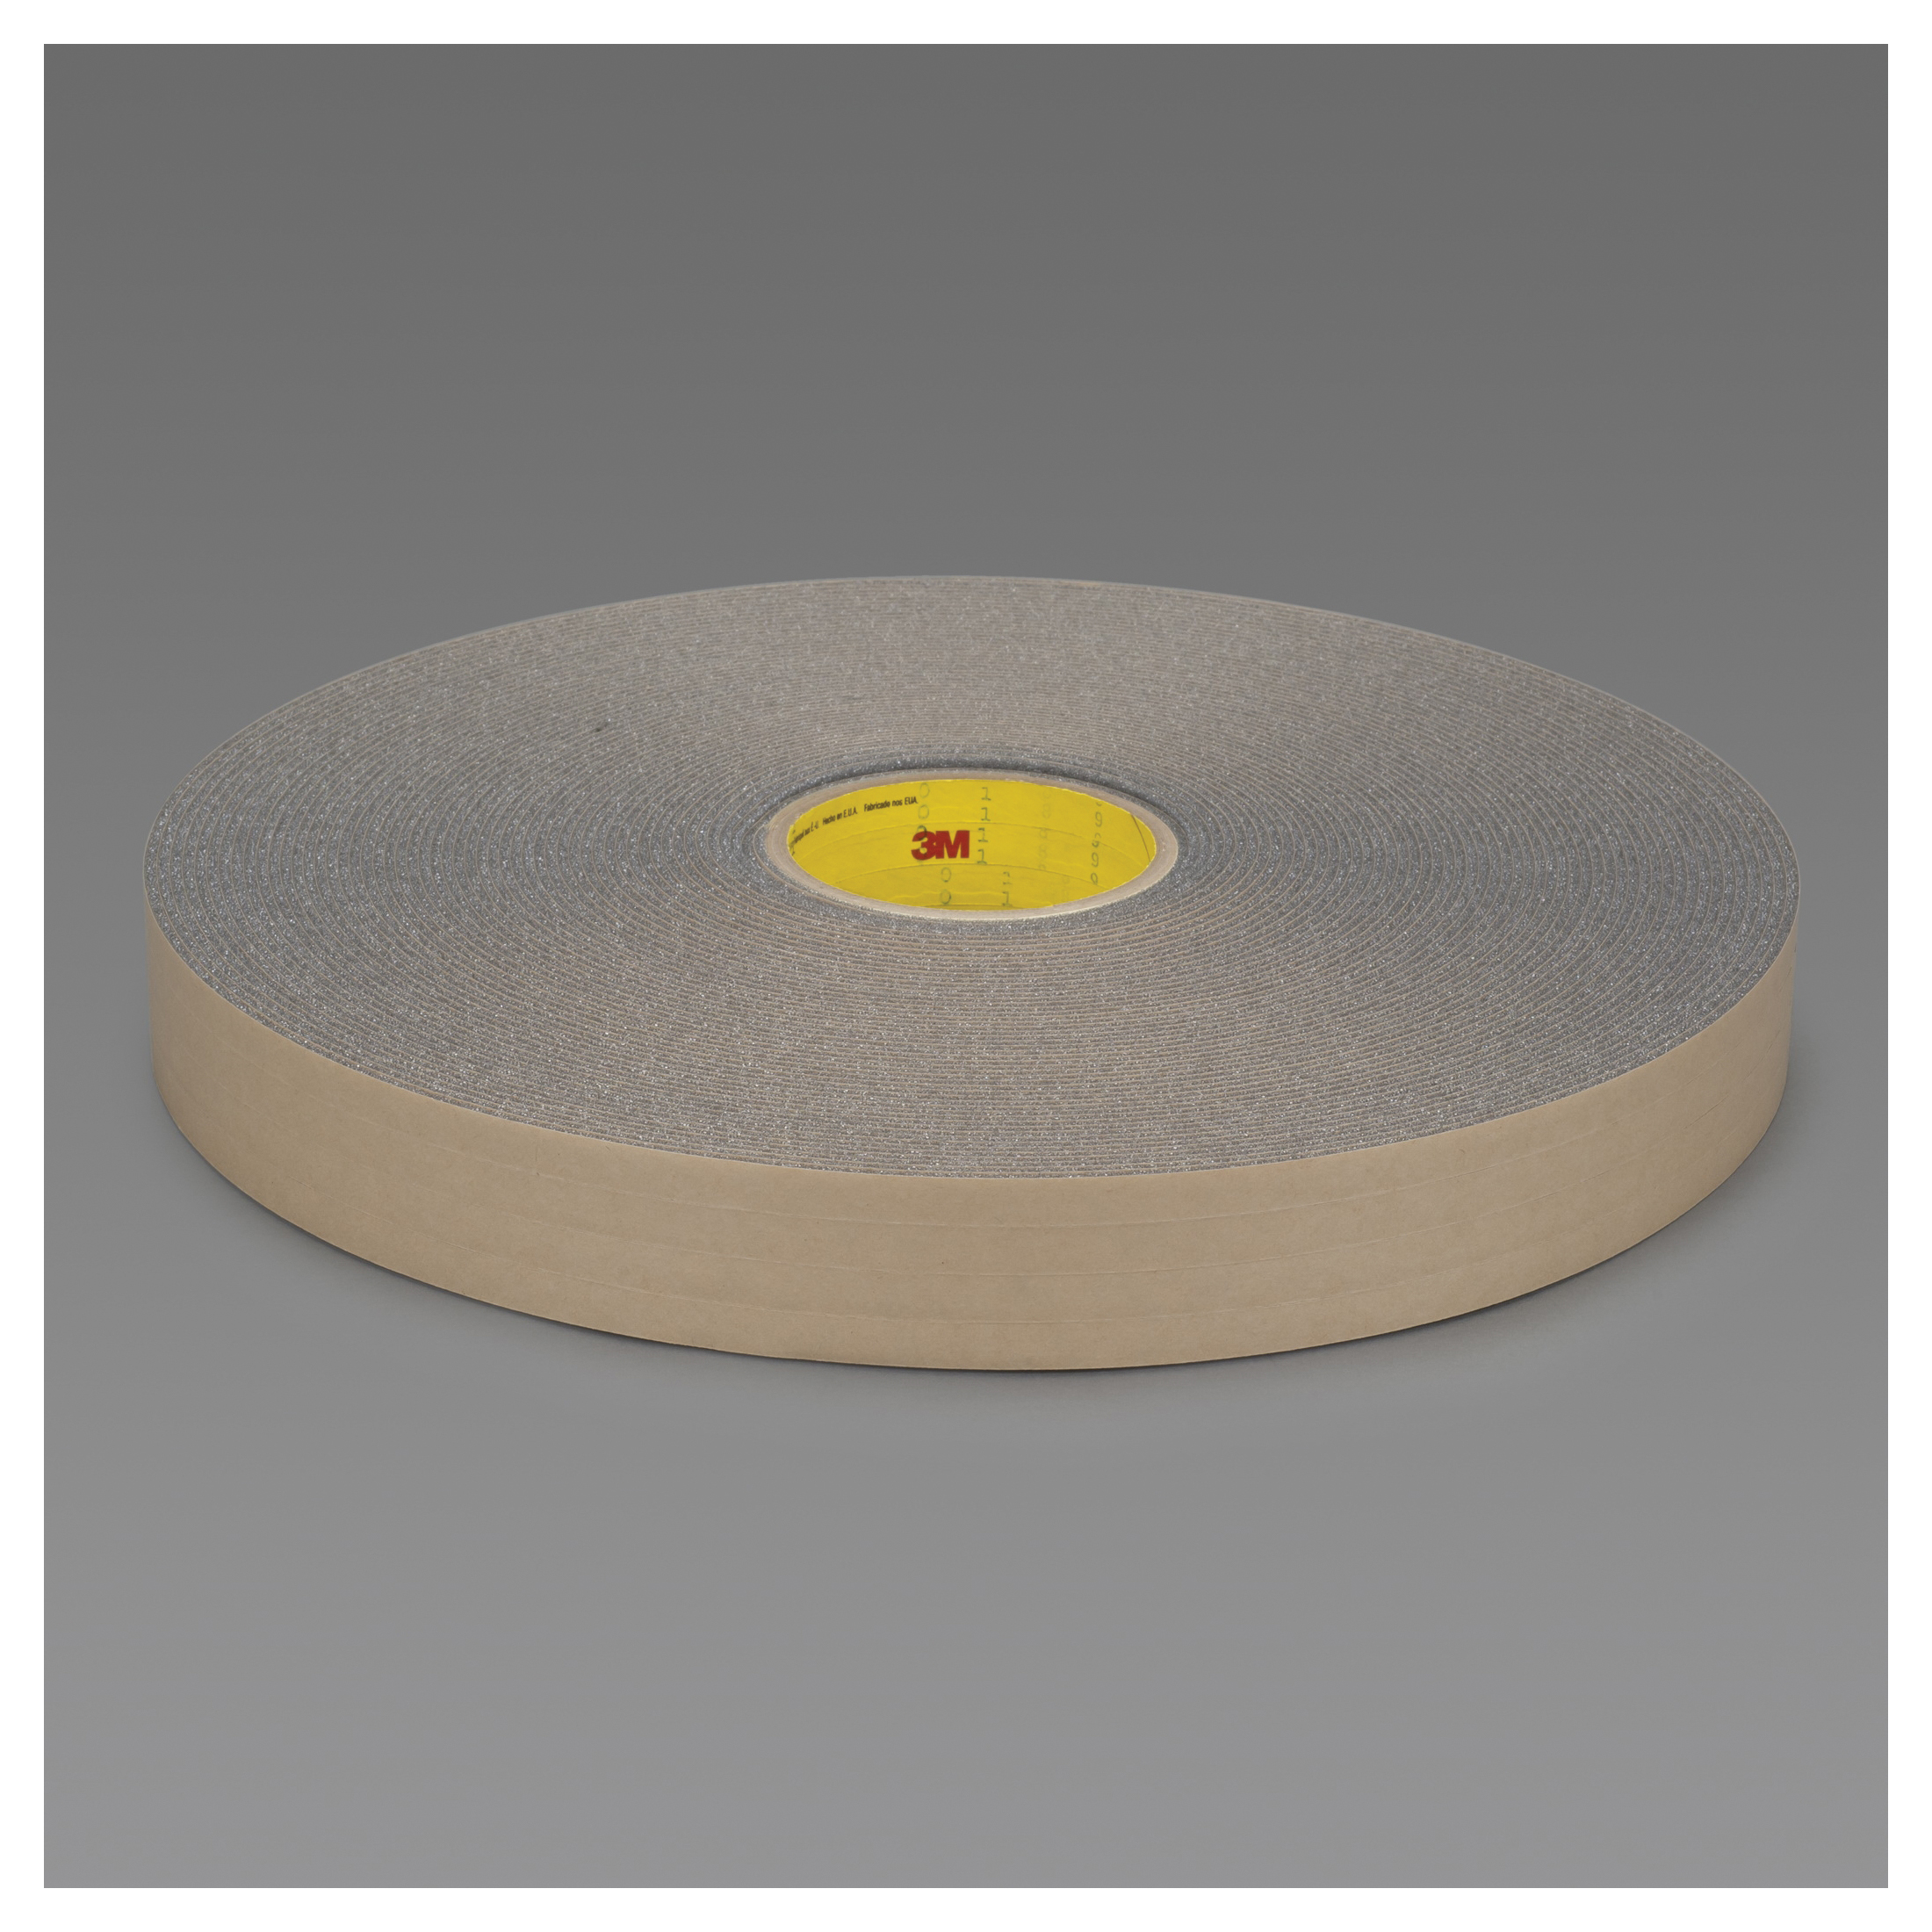 3M™ 051131-06448 4318 Single Coated Open Cell Foam Tape, 36 yd L x 3/4 in W, 125 mil THK, Acrylic Adhesive, Urethane Foam Backing, Charcoal Gray